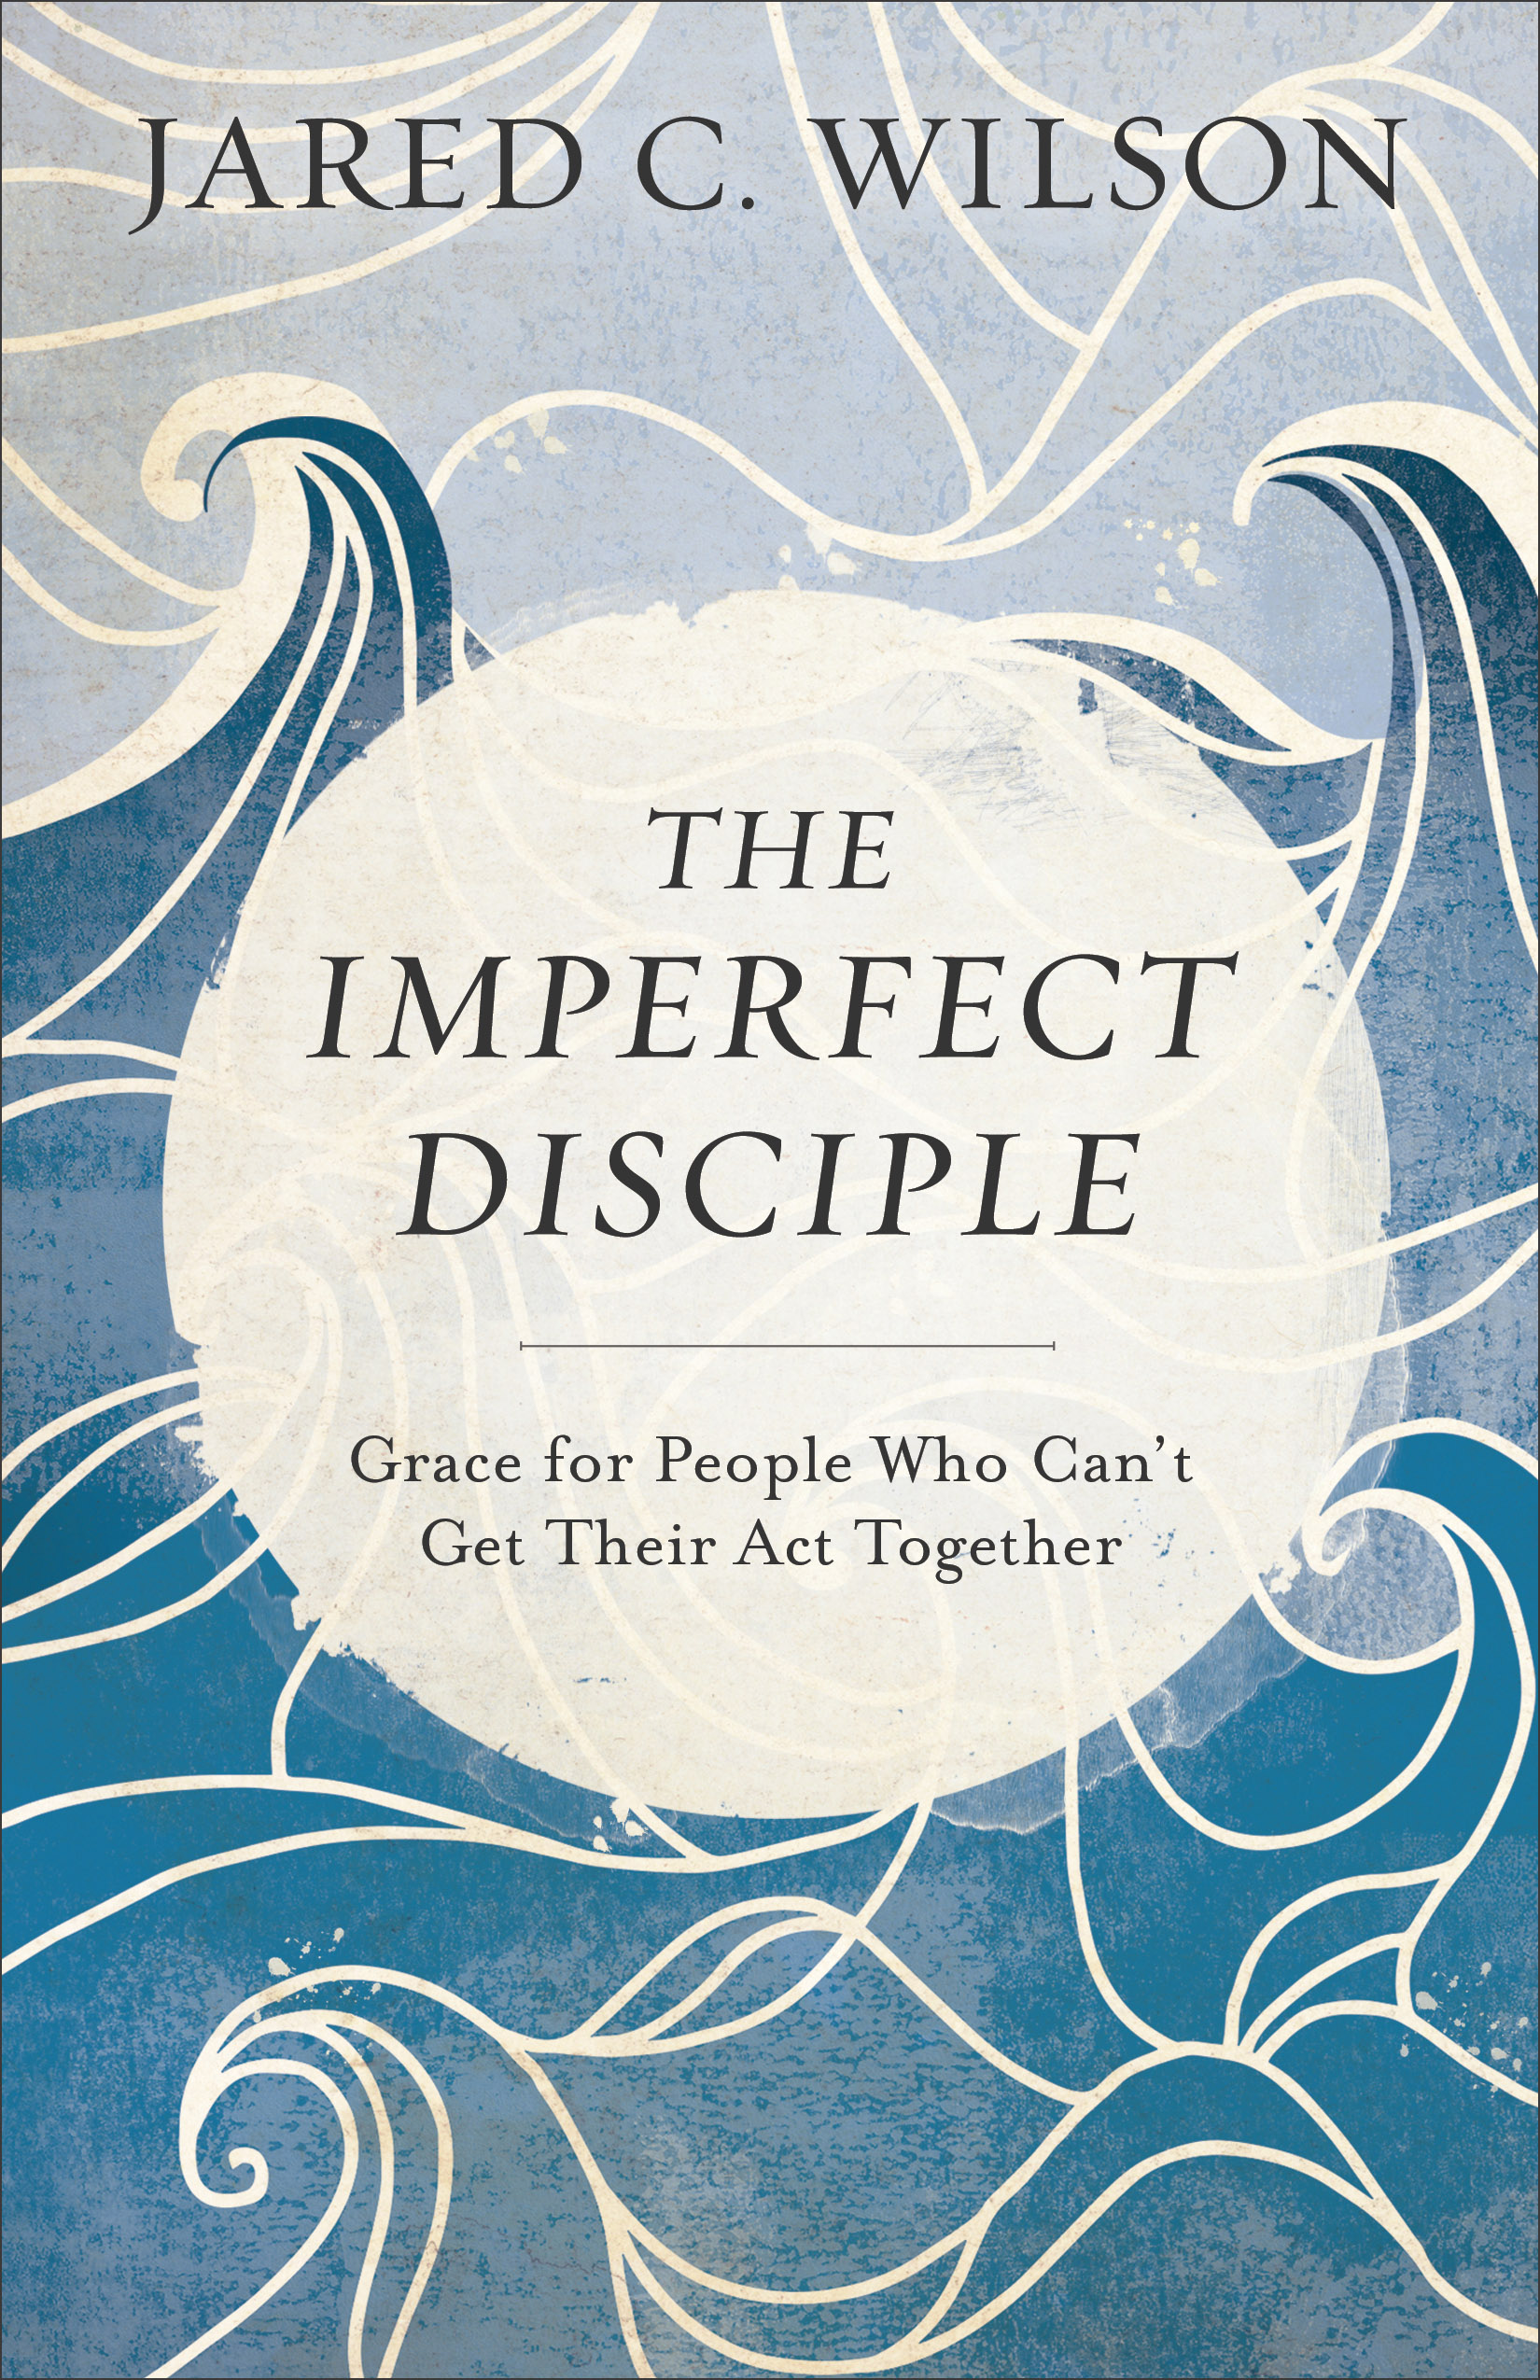 The Imperfect Disciple  is now available from Baker Books.